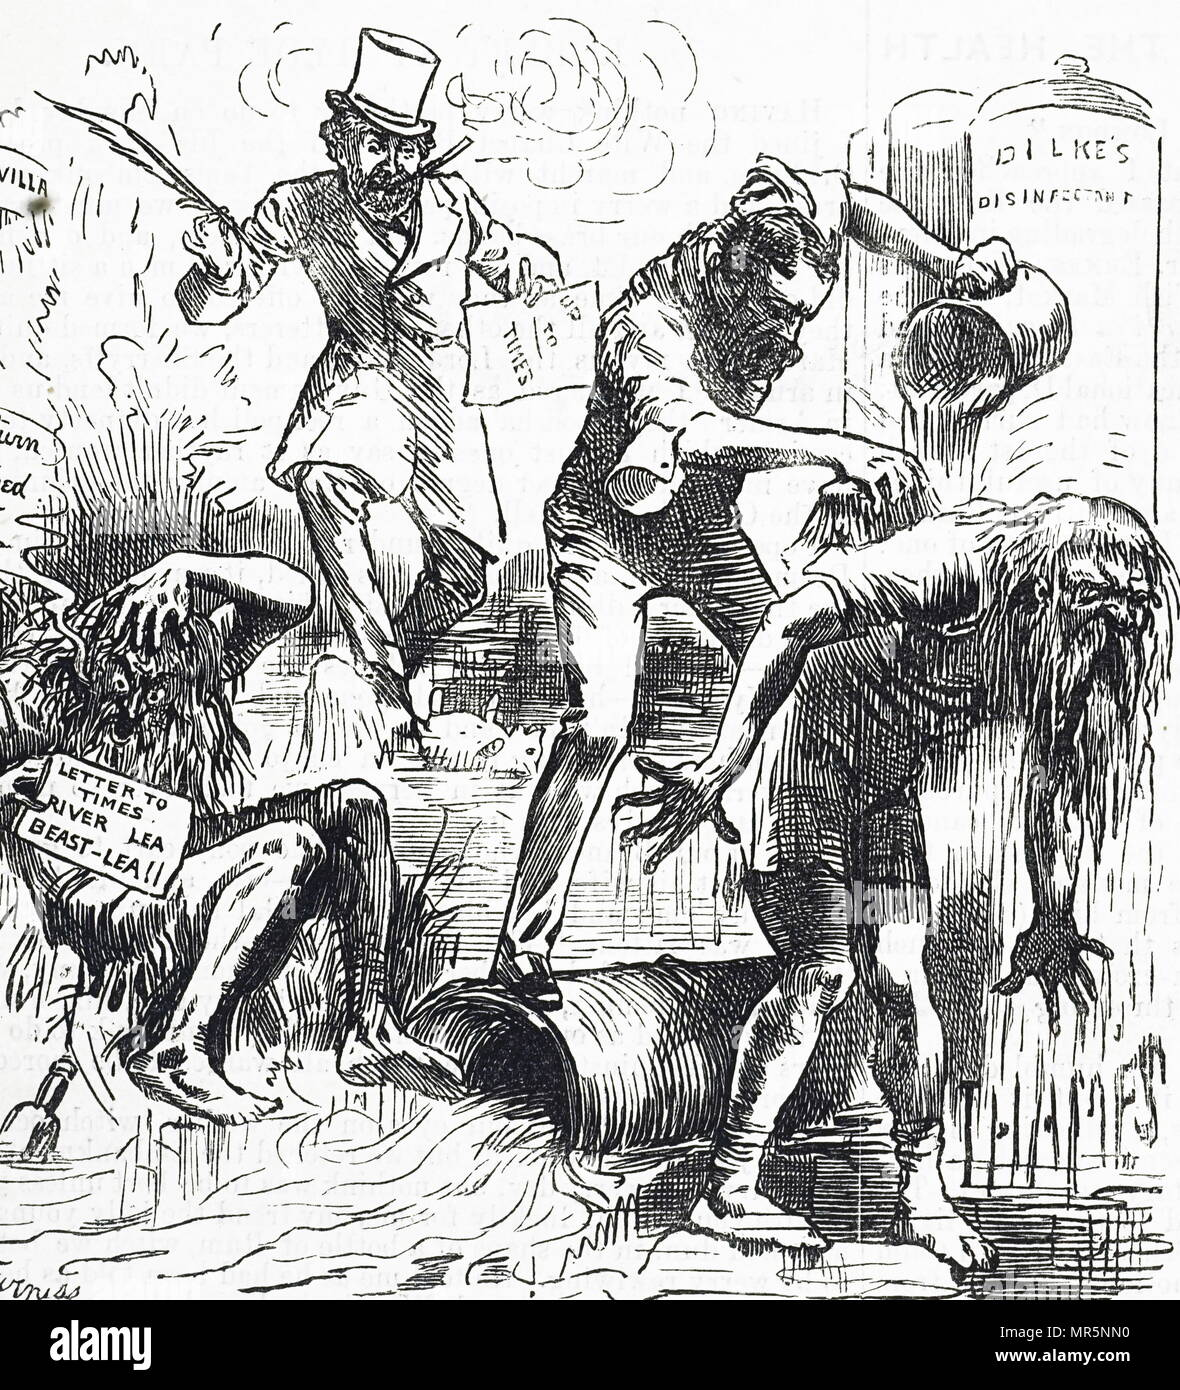 Cartoon depicting the Thames and the Lea Rivers being attacked because of their filthy condition. Illustrated by Harry Furniss (1854-1925) an Irish artist and illustrator. Dated 19th century - Stock Image